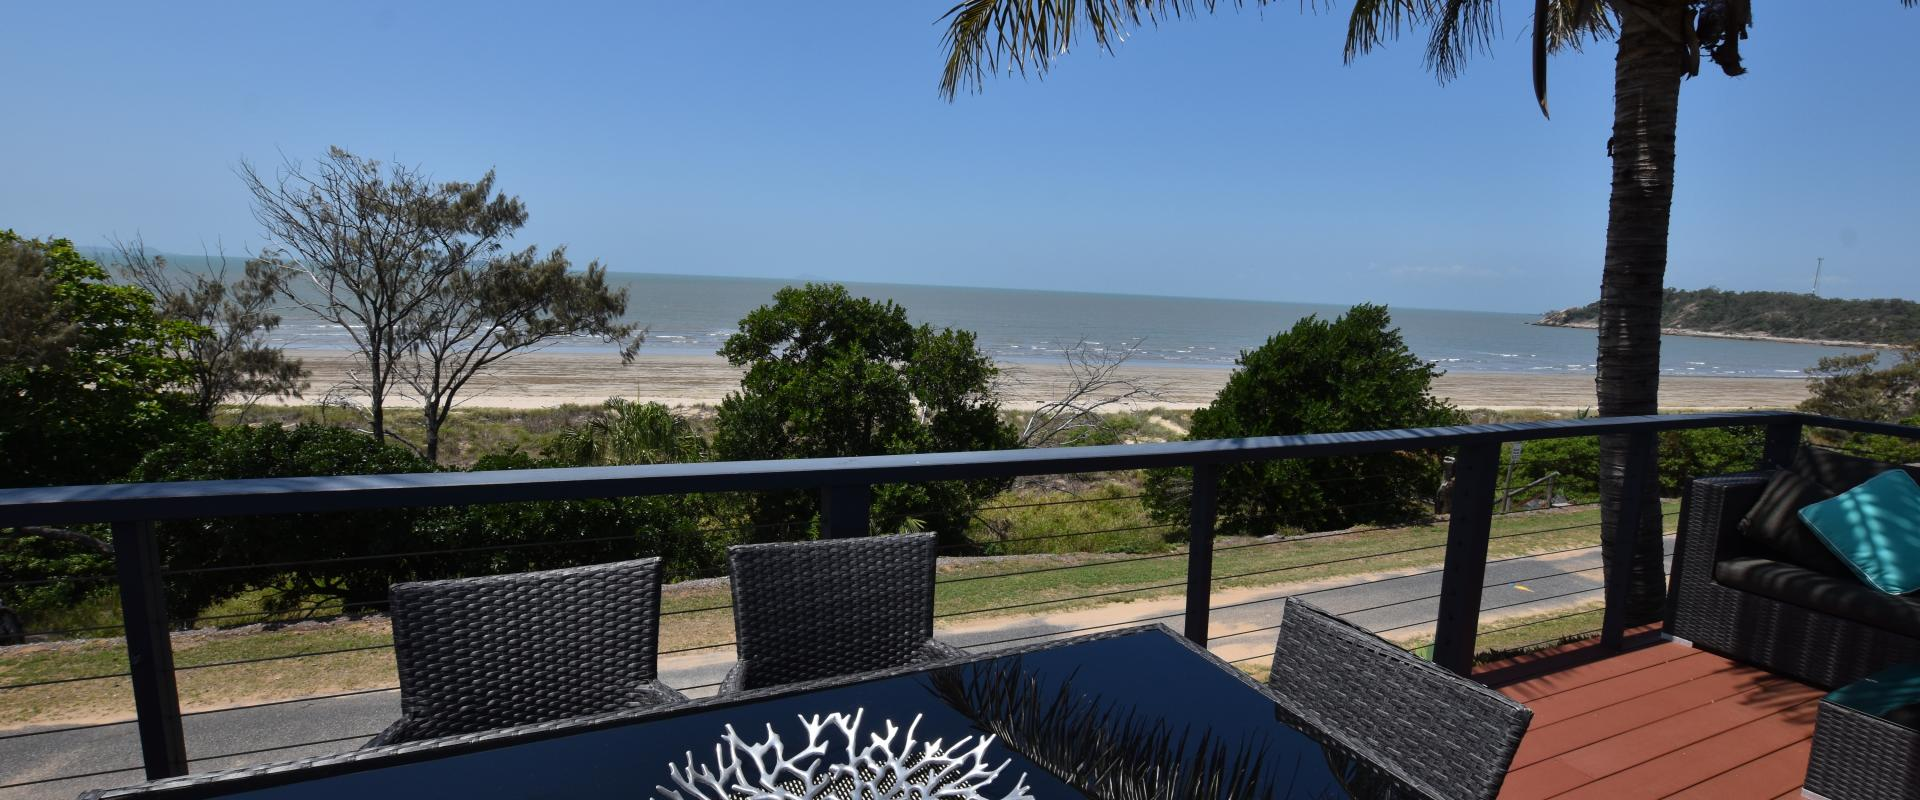 Buehows Real Estate - GORGEOUS COTTAGE RIGHT ON THE BEACH